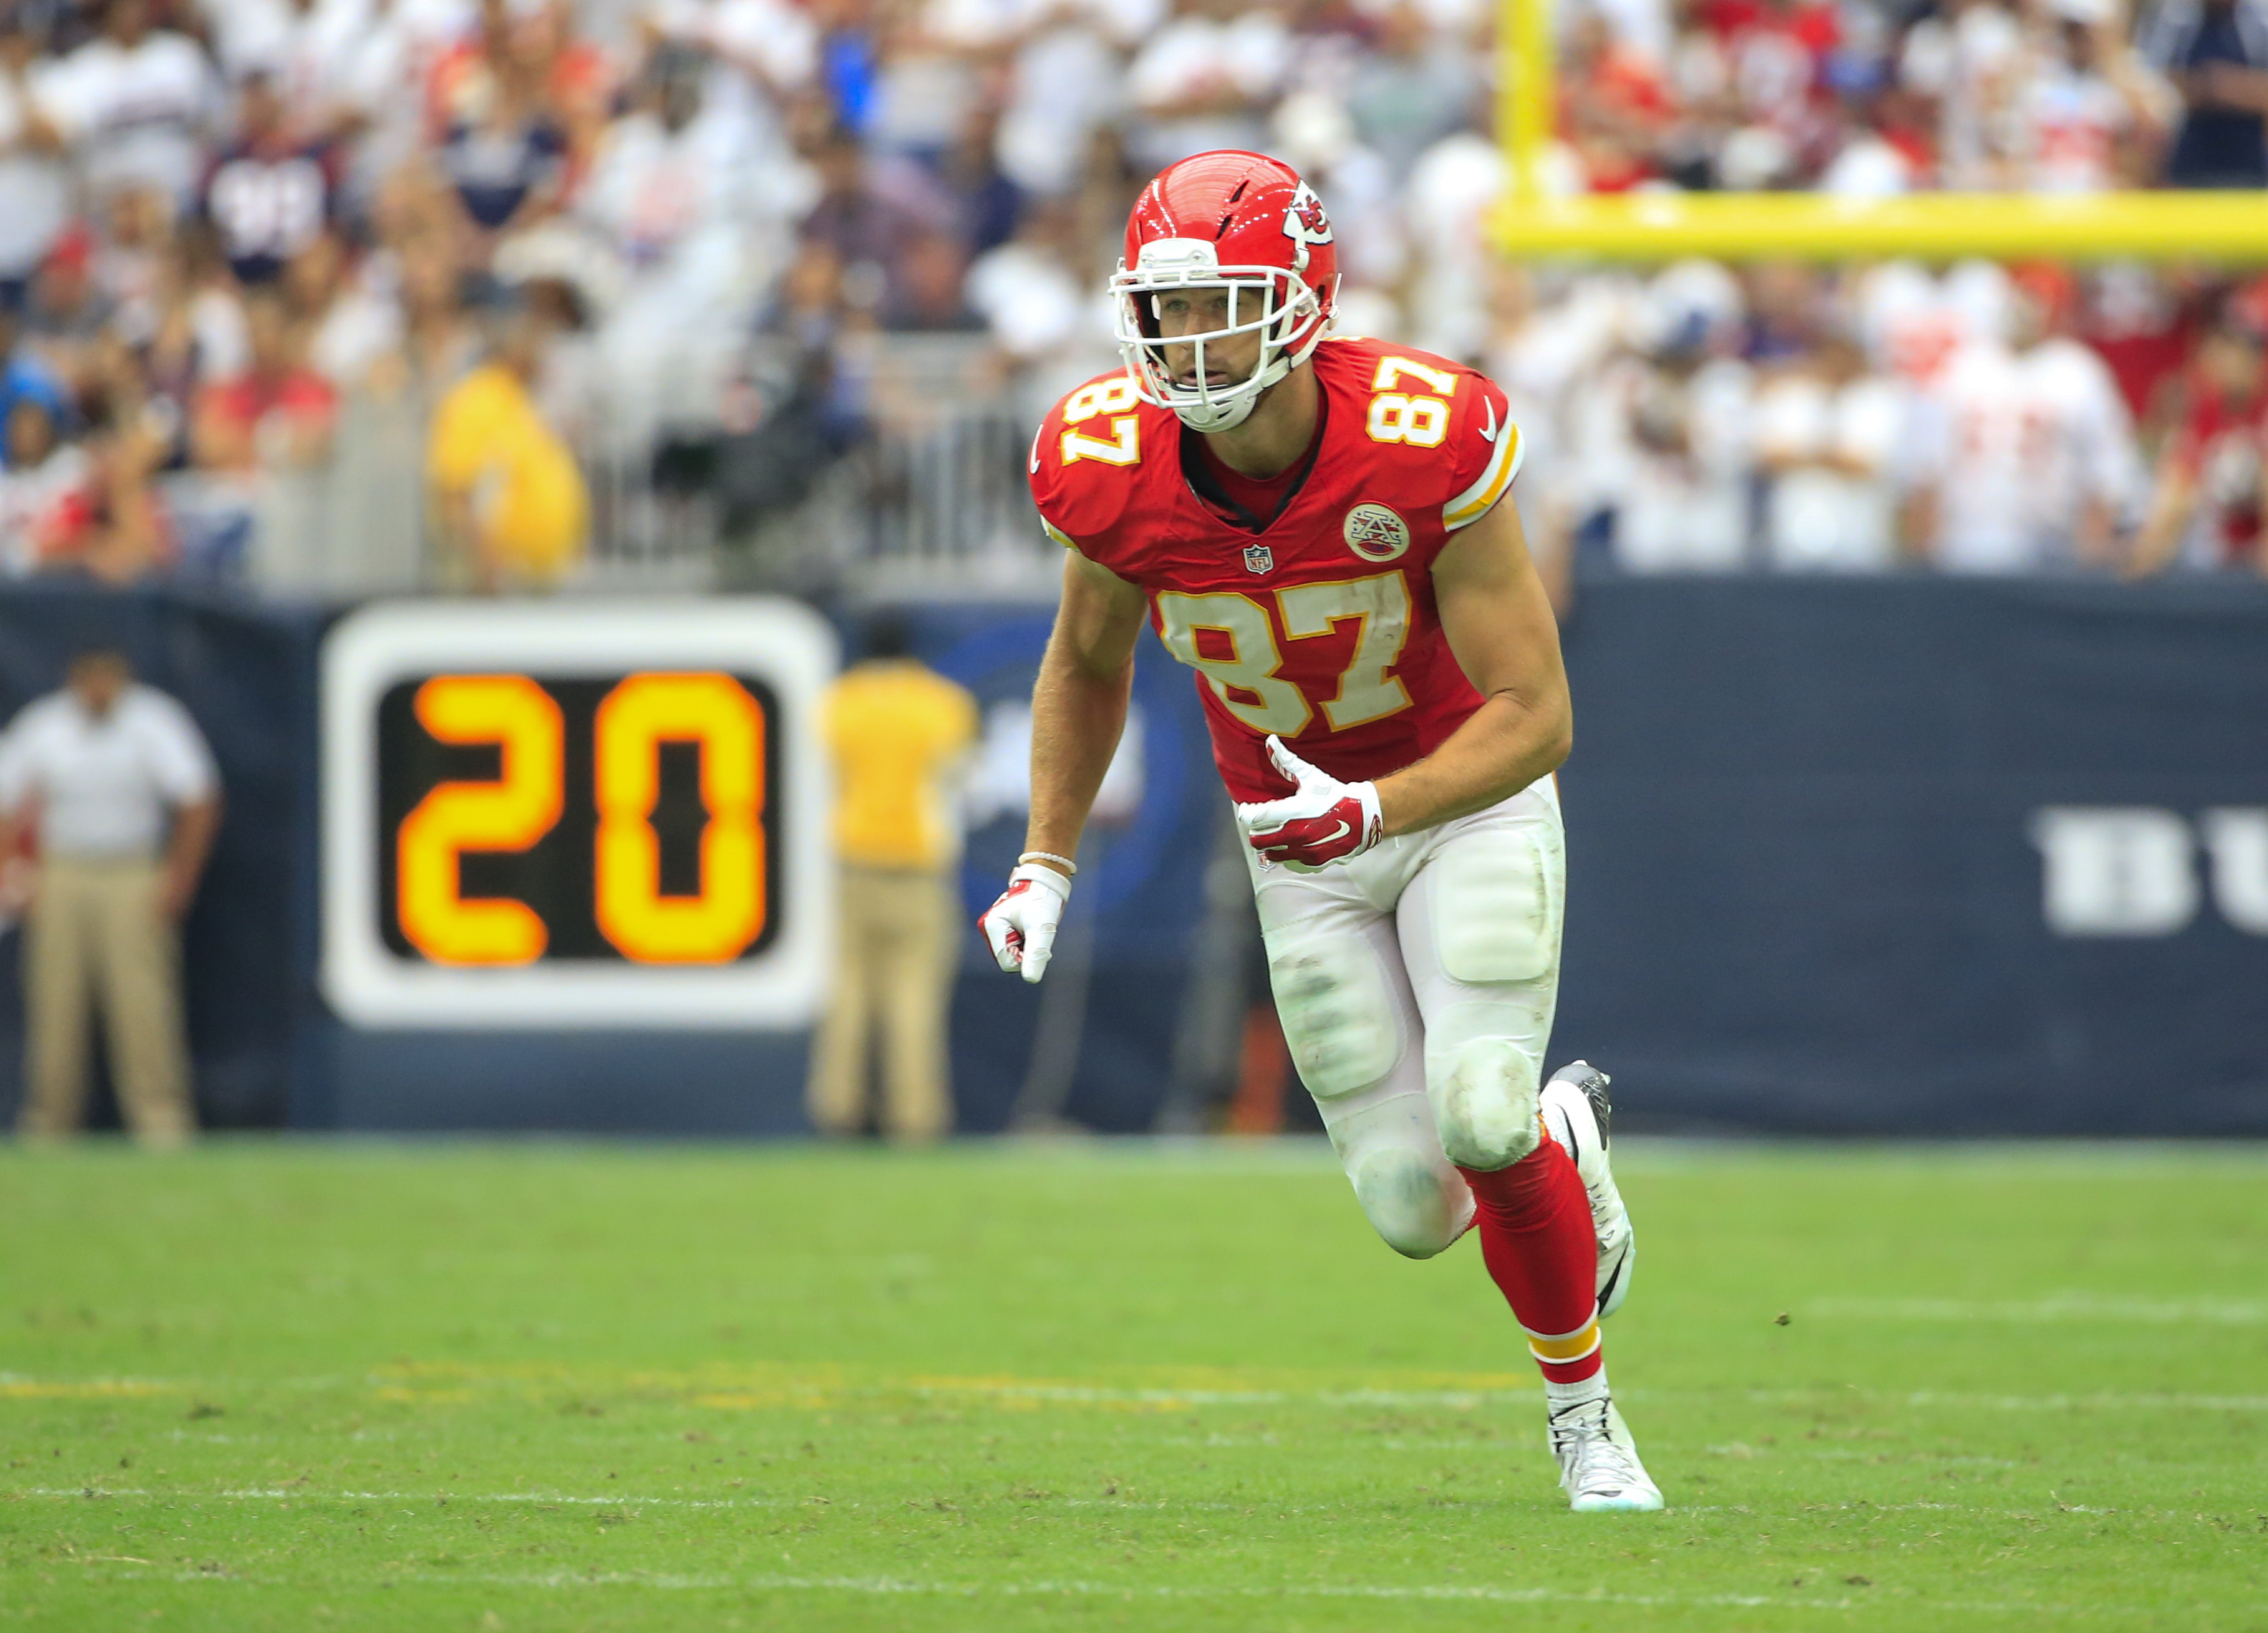 Kelce-smash will soon rival the Gronk-smash.